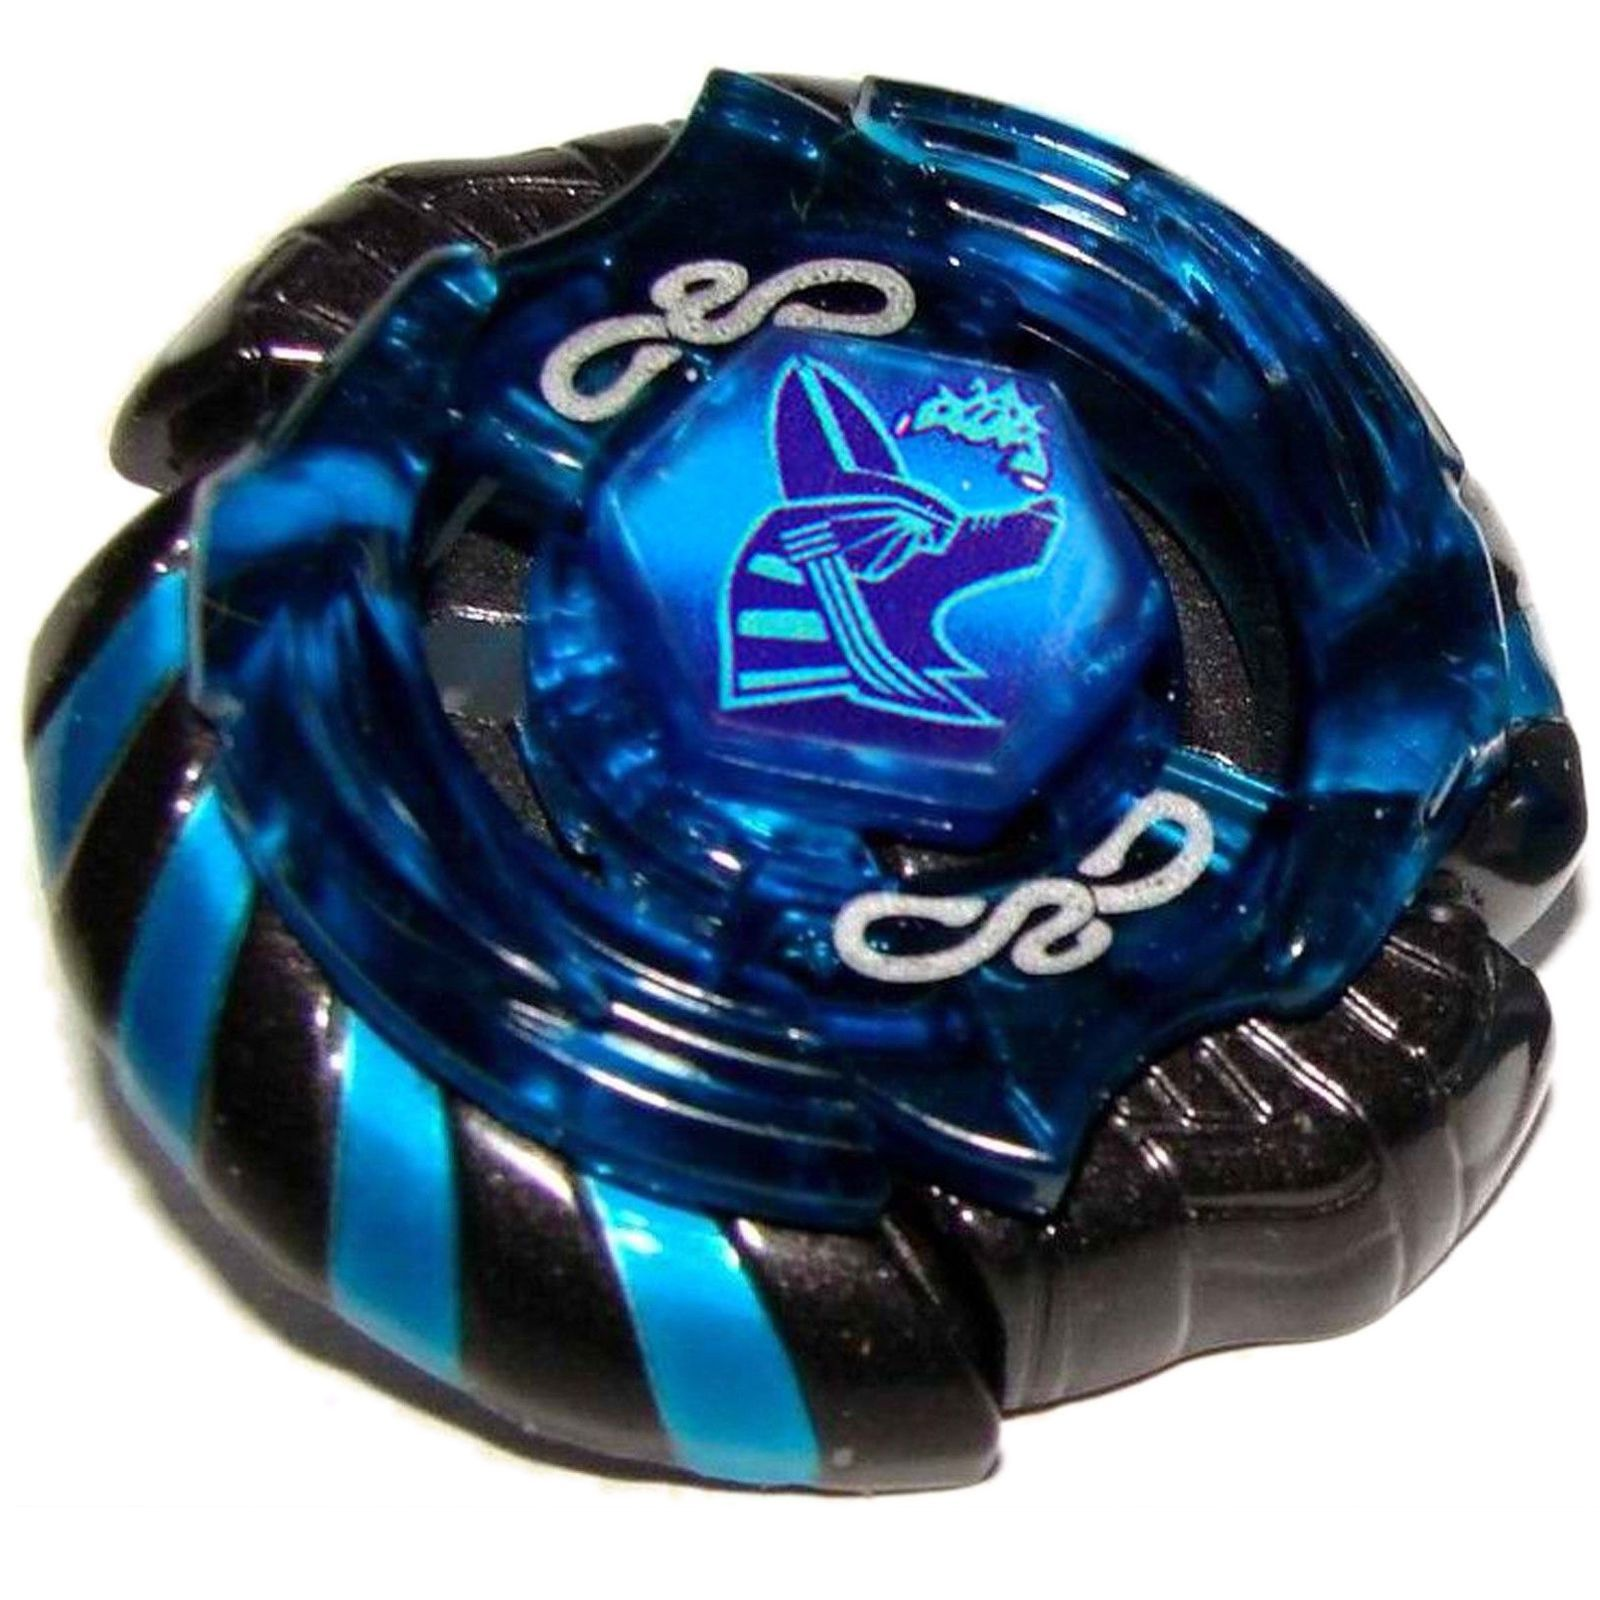 807e50b80 Beyblade Mercury Anubis (Anubius) Black Blue Legend Version Limited Edition  WBBA